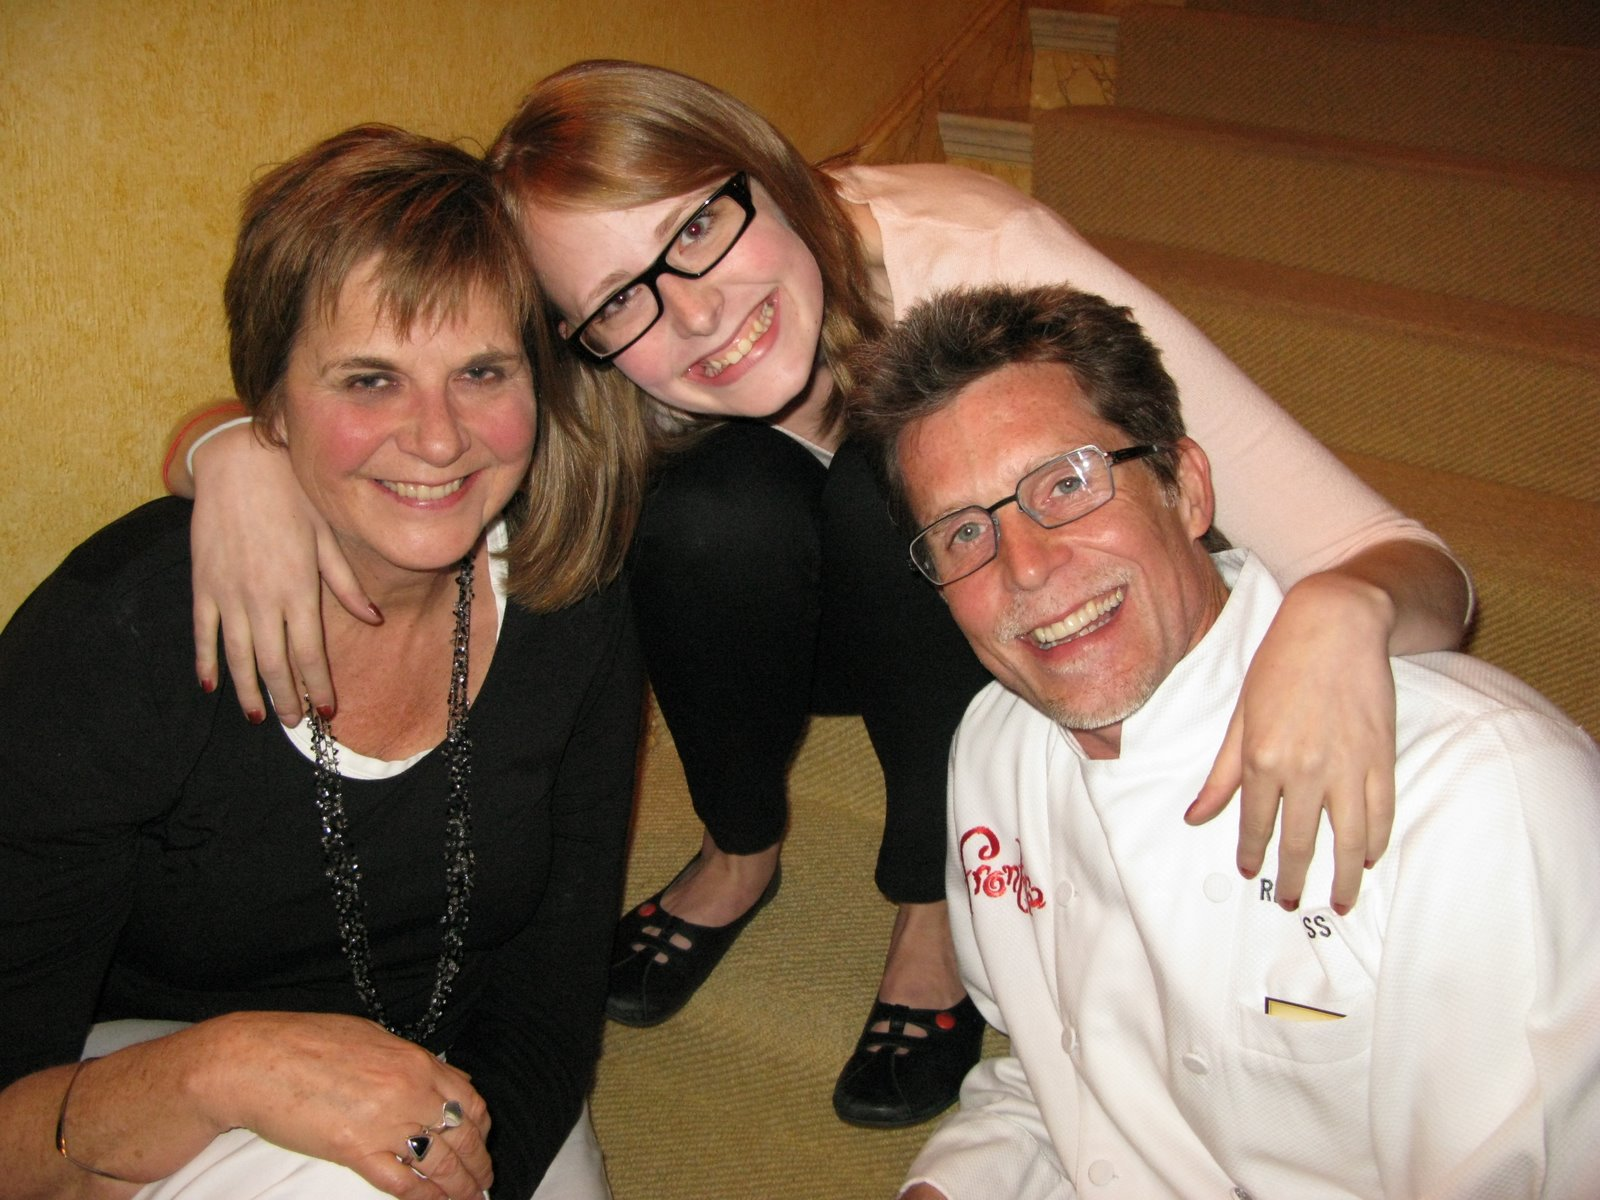 Rick Bayless Daughter – Who is she